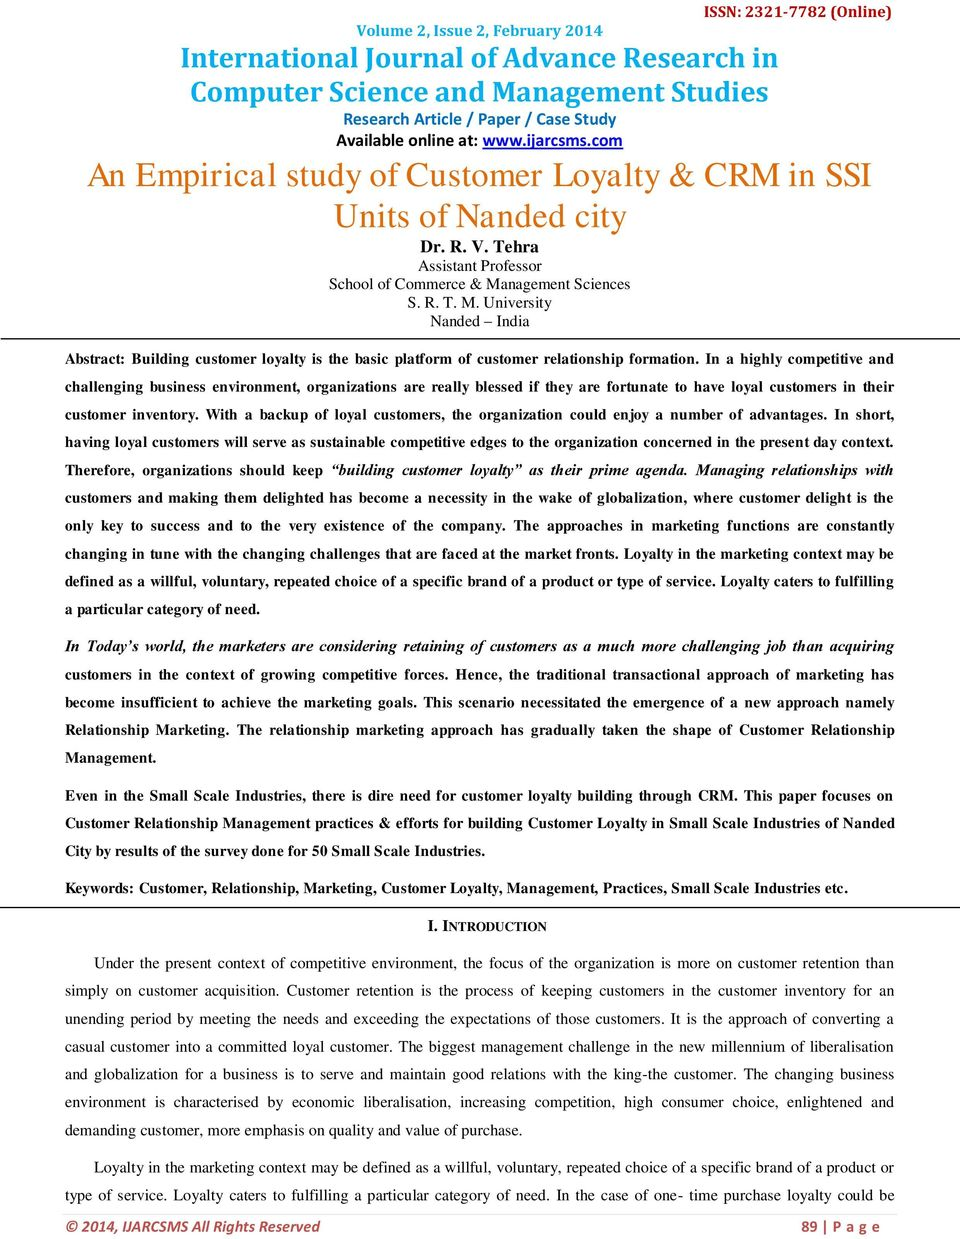 nagement Sciences S. R. T. M. University Nanded India Abstract: Building customer loyalty is the basic platform of customer relationship formation.